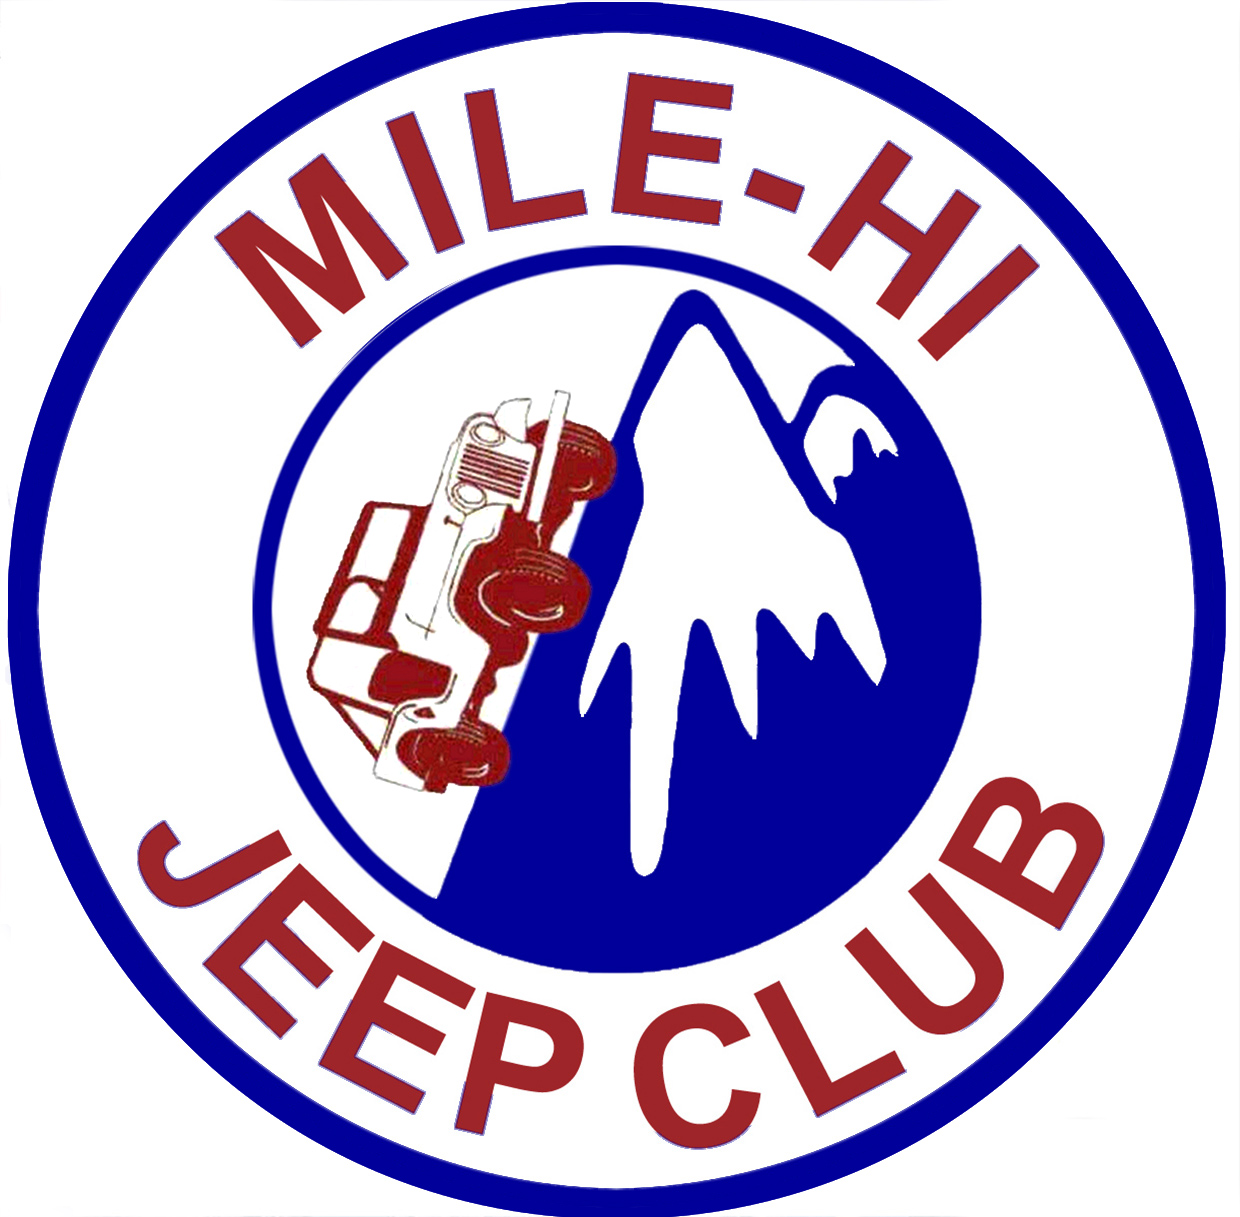 mile hi jeep logo